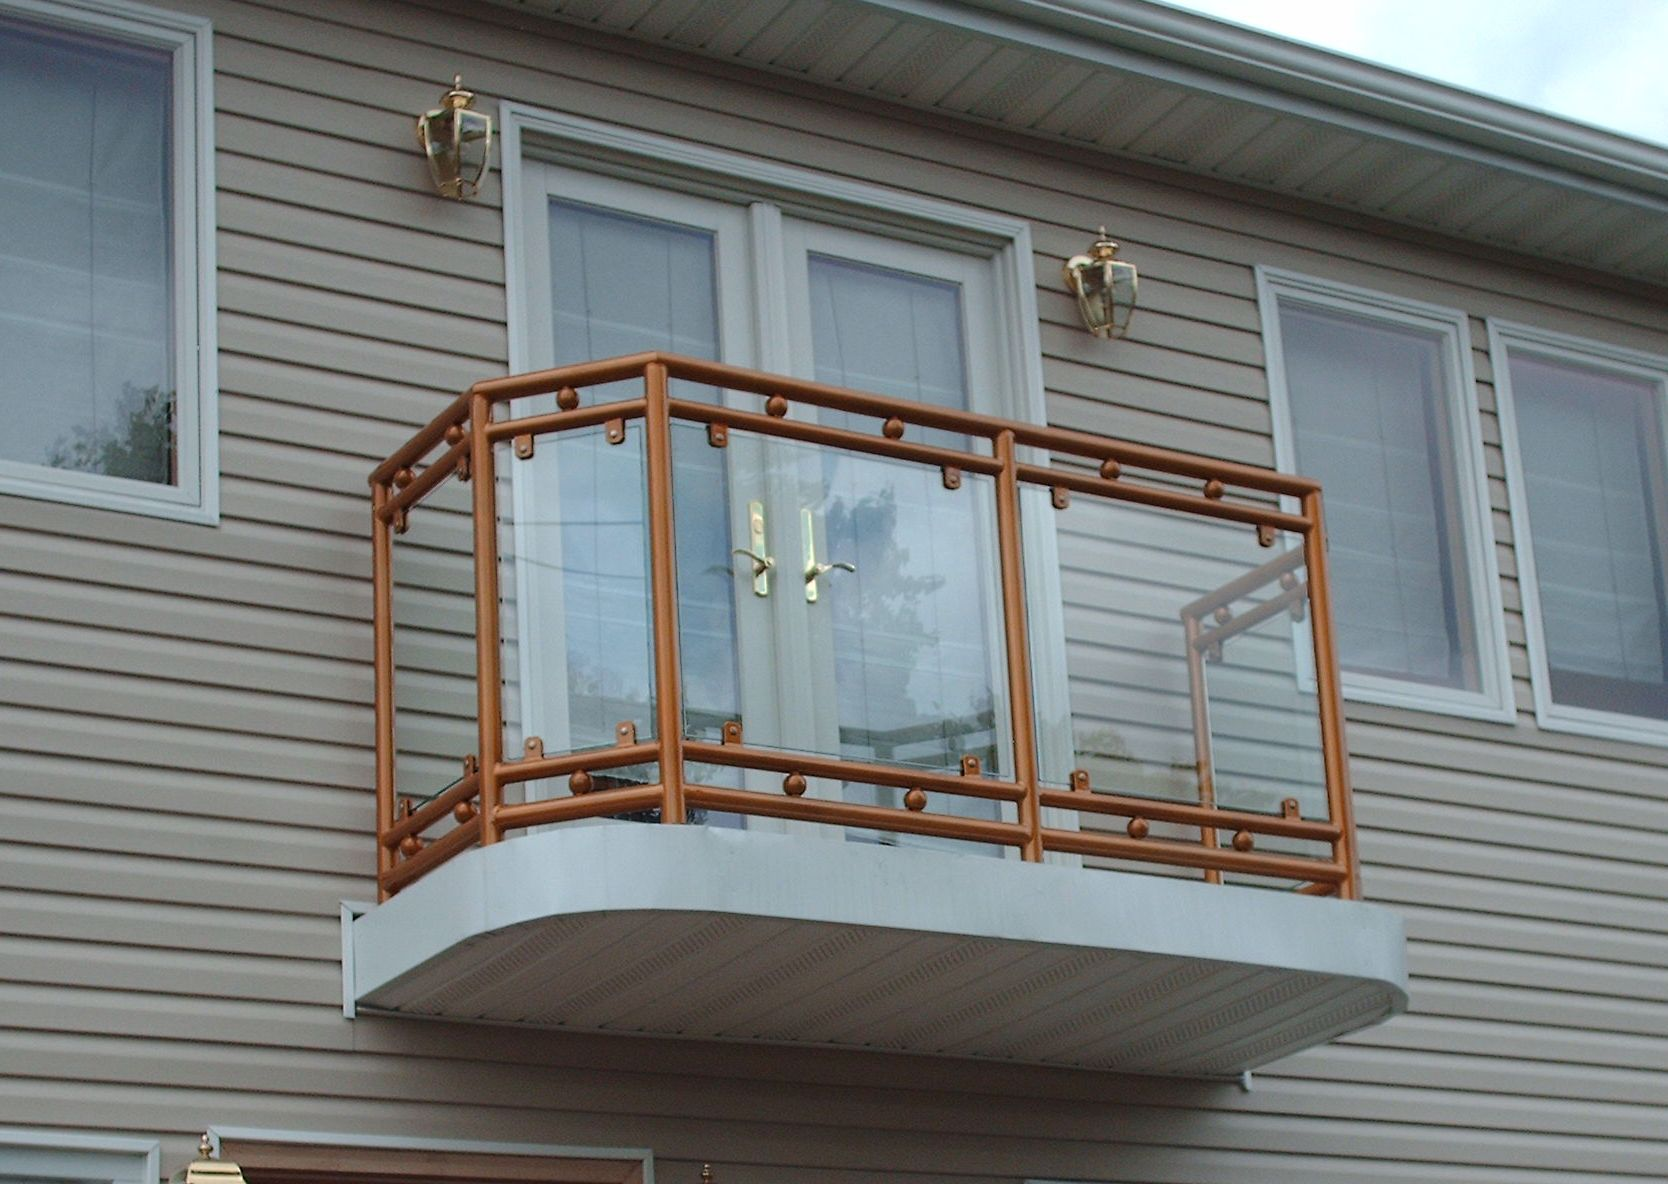 Guardian gate balcony balconies pinterest balcony for Balconies or balconies